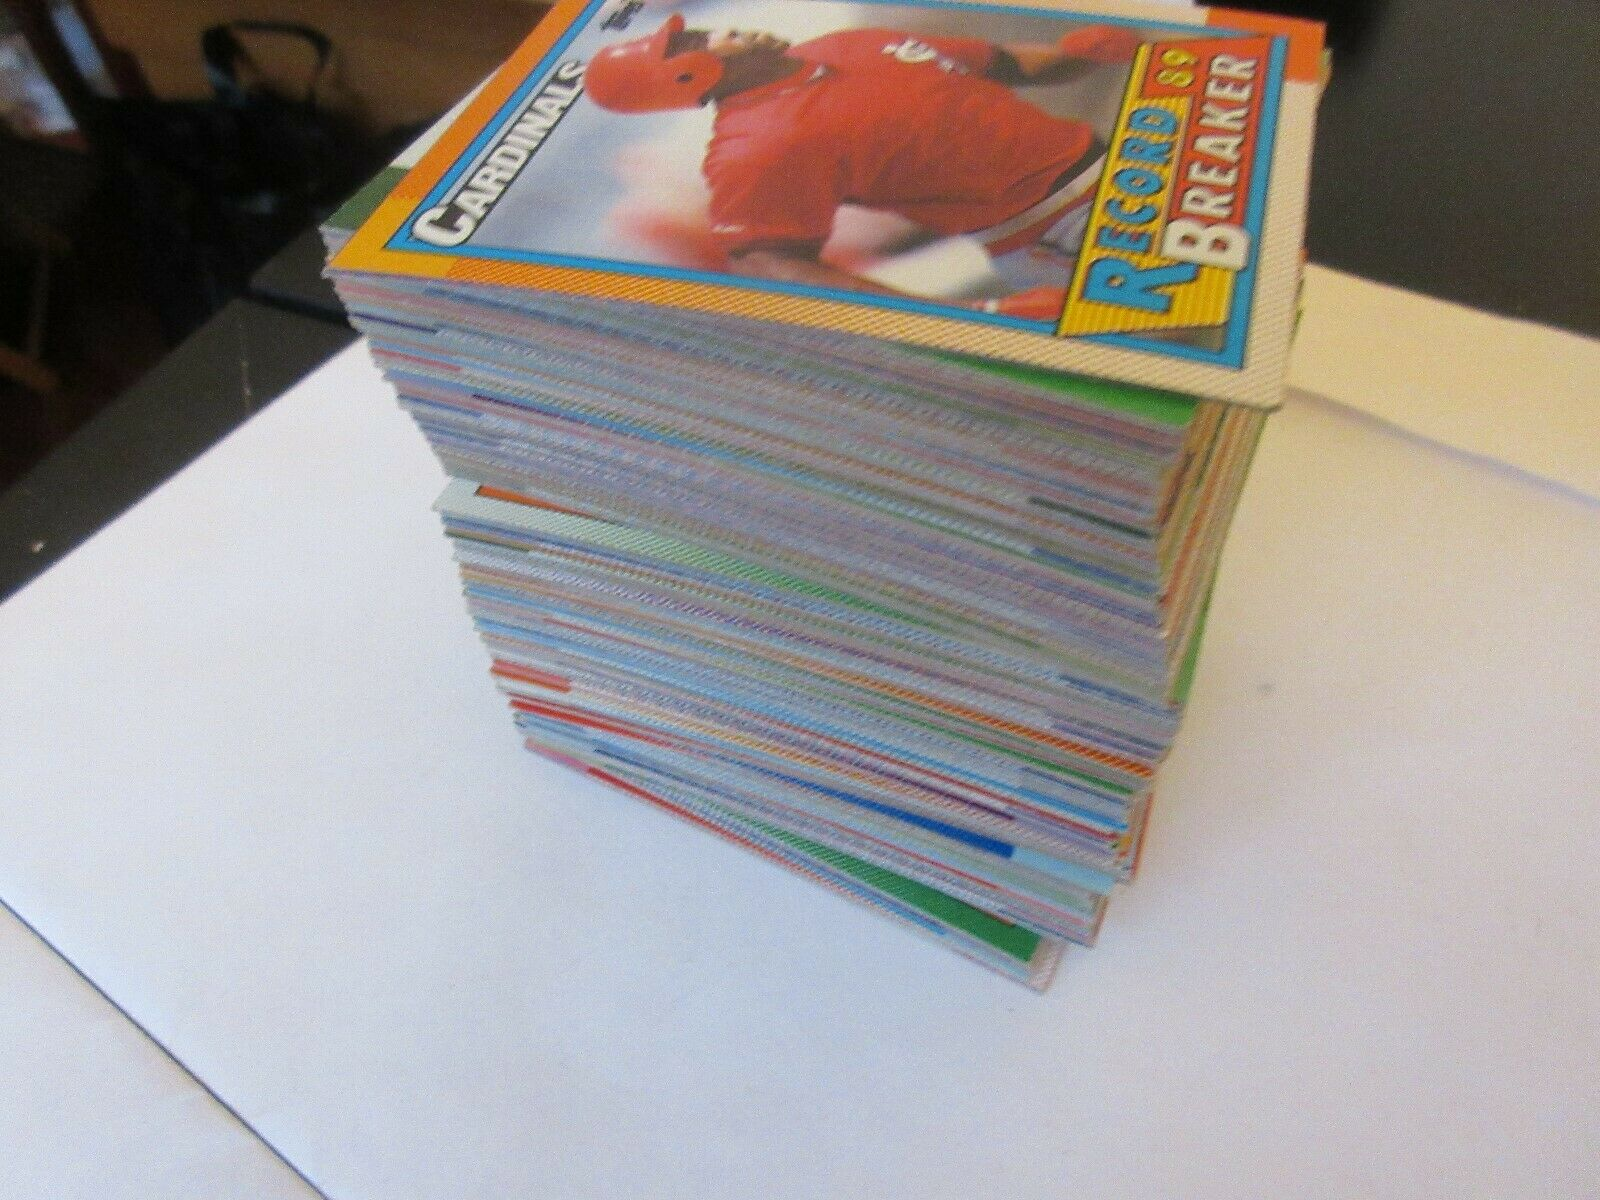 1990 Topps Baseball Cards , 215 Cards , Mostly Commons